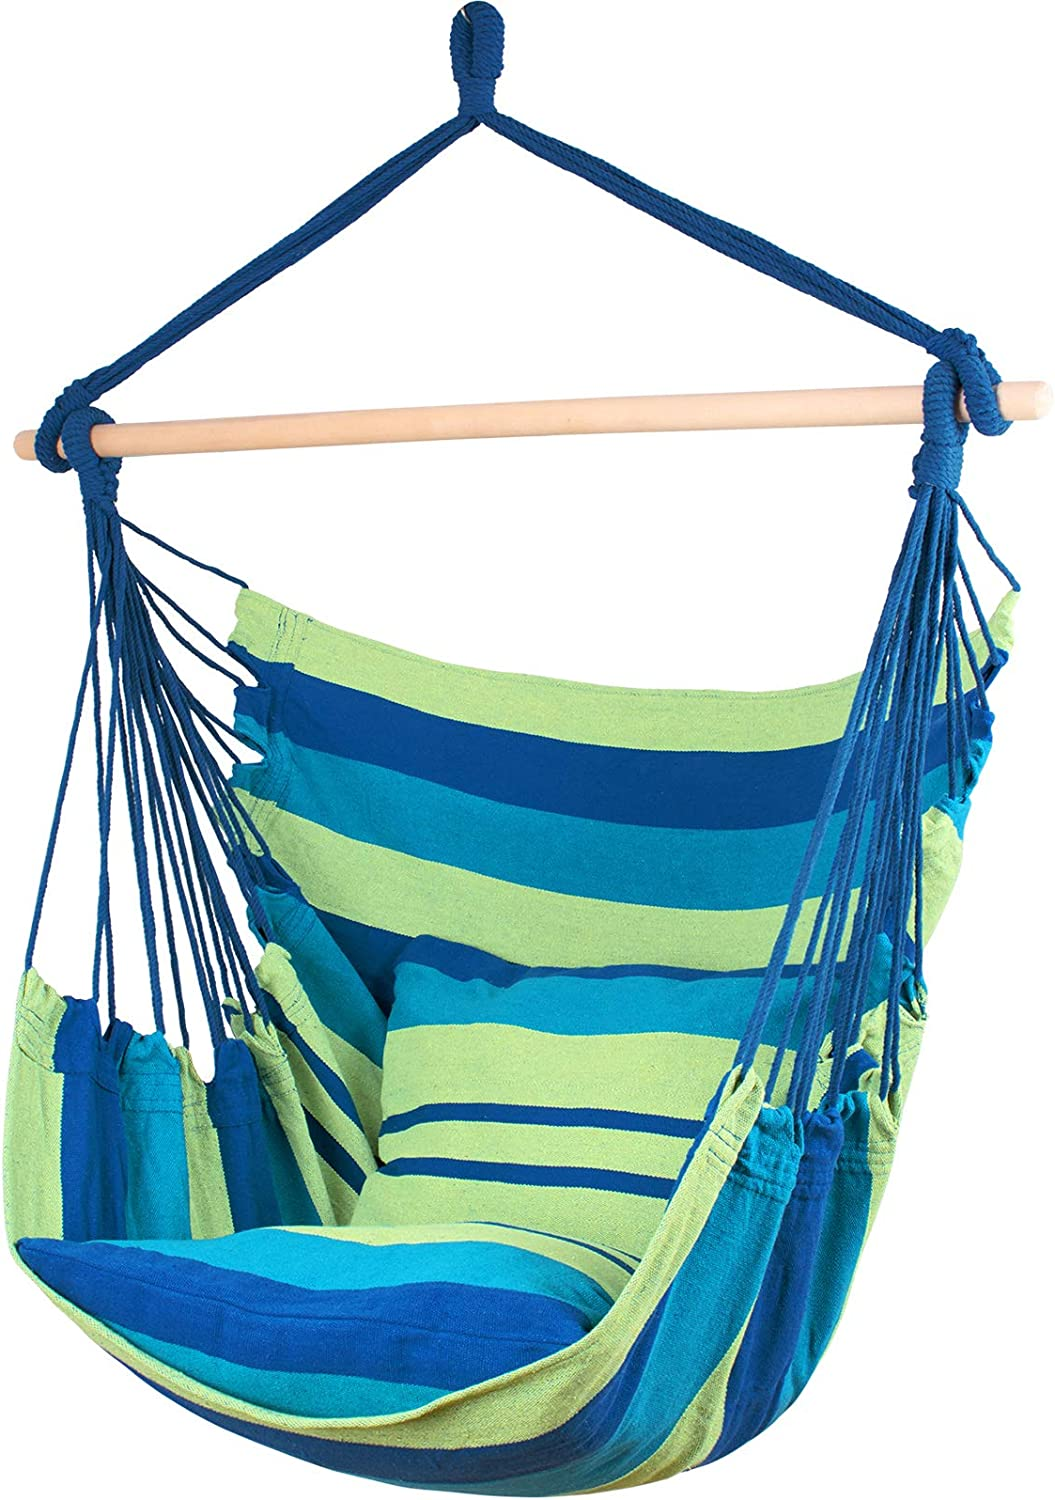 Ankwell Hammock Chair Hanging Rope Swing Cushions Inclu - 2 We OFFer at cheap prices Seat half